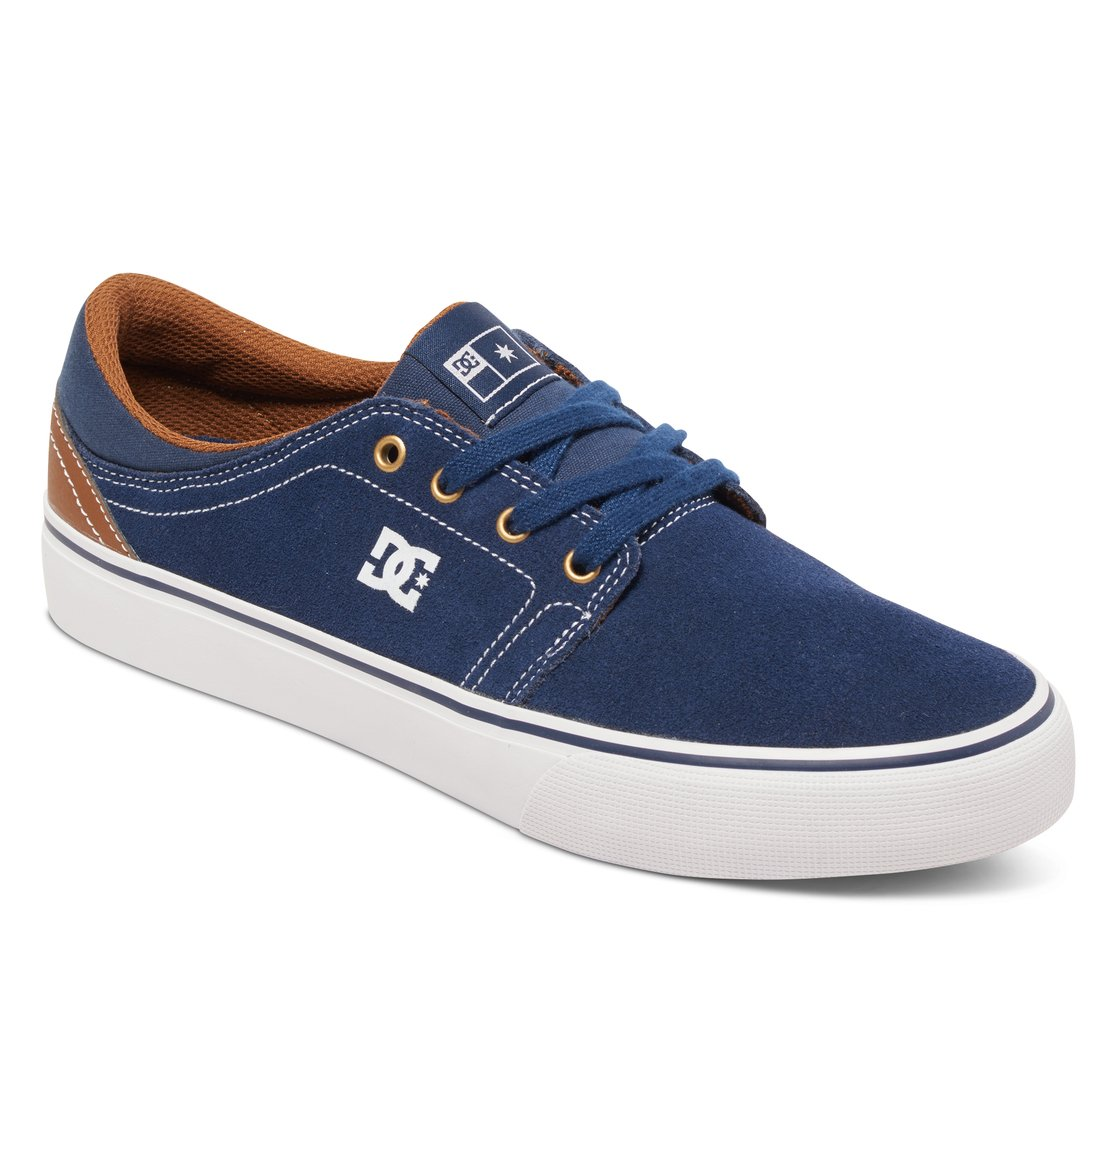 trase s chaussures de skate 3613371790059 dc shoes. Black Bedroom Furniture Sets. Home Design Ideas